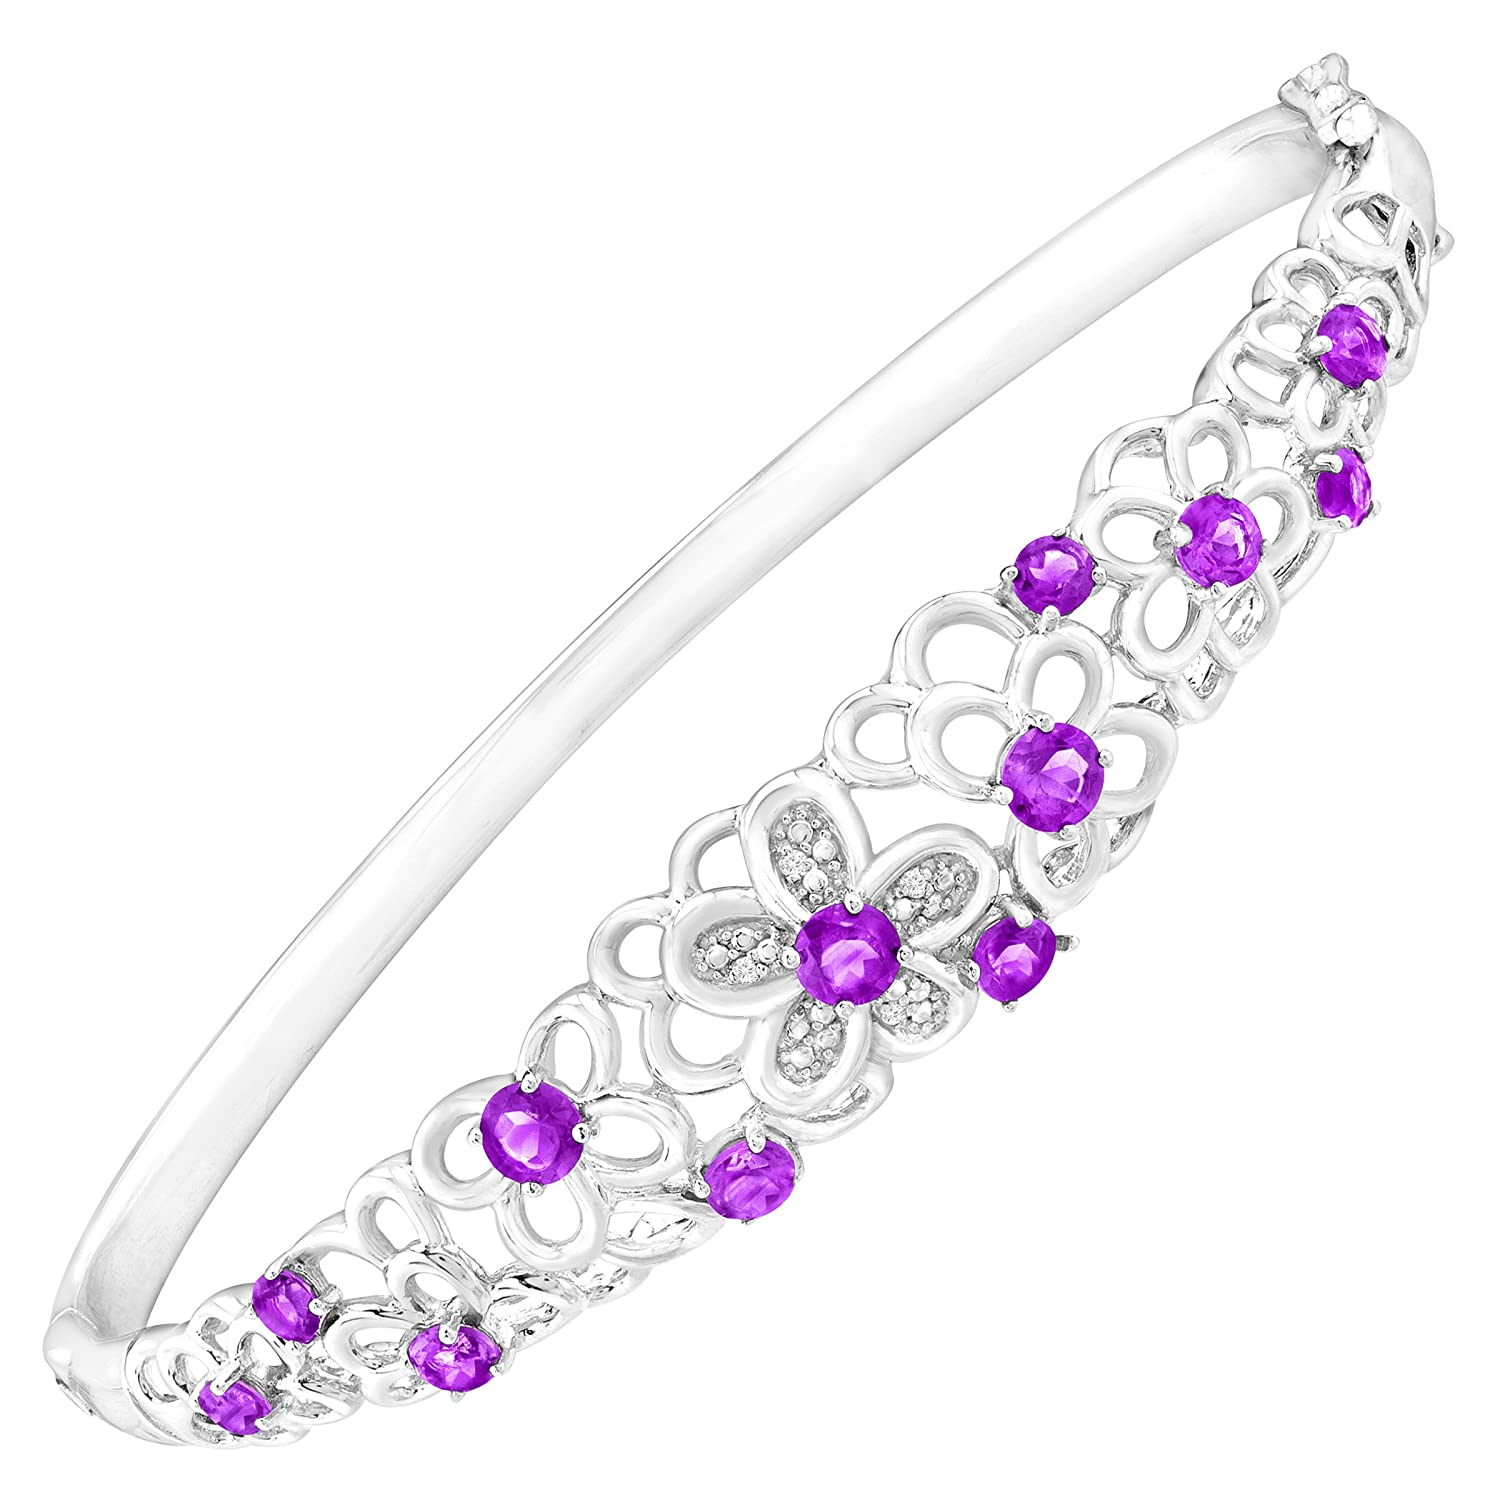 1 7/8 ct Natural Amethyst Bangle Bracelet with Diamonds in Sterling Silver